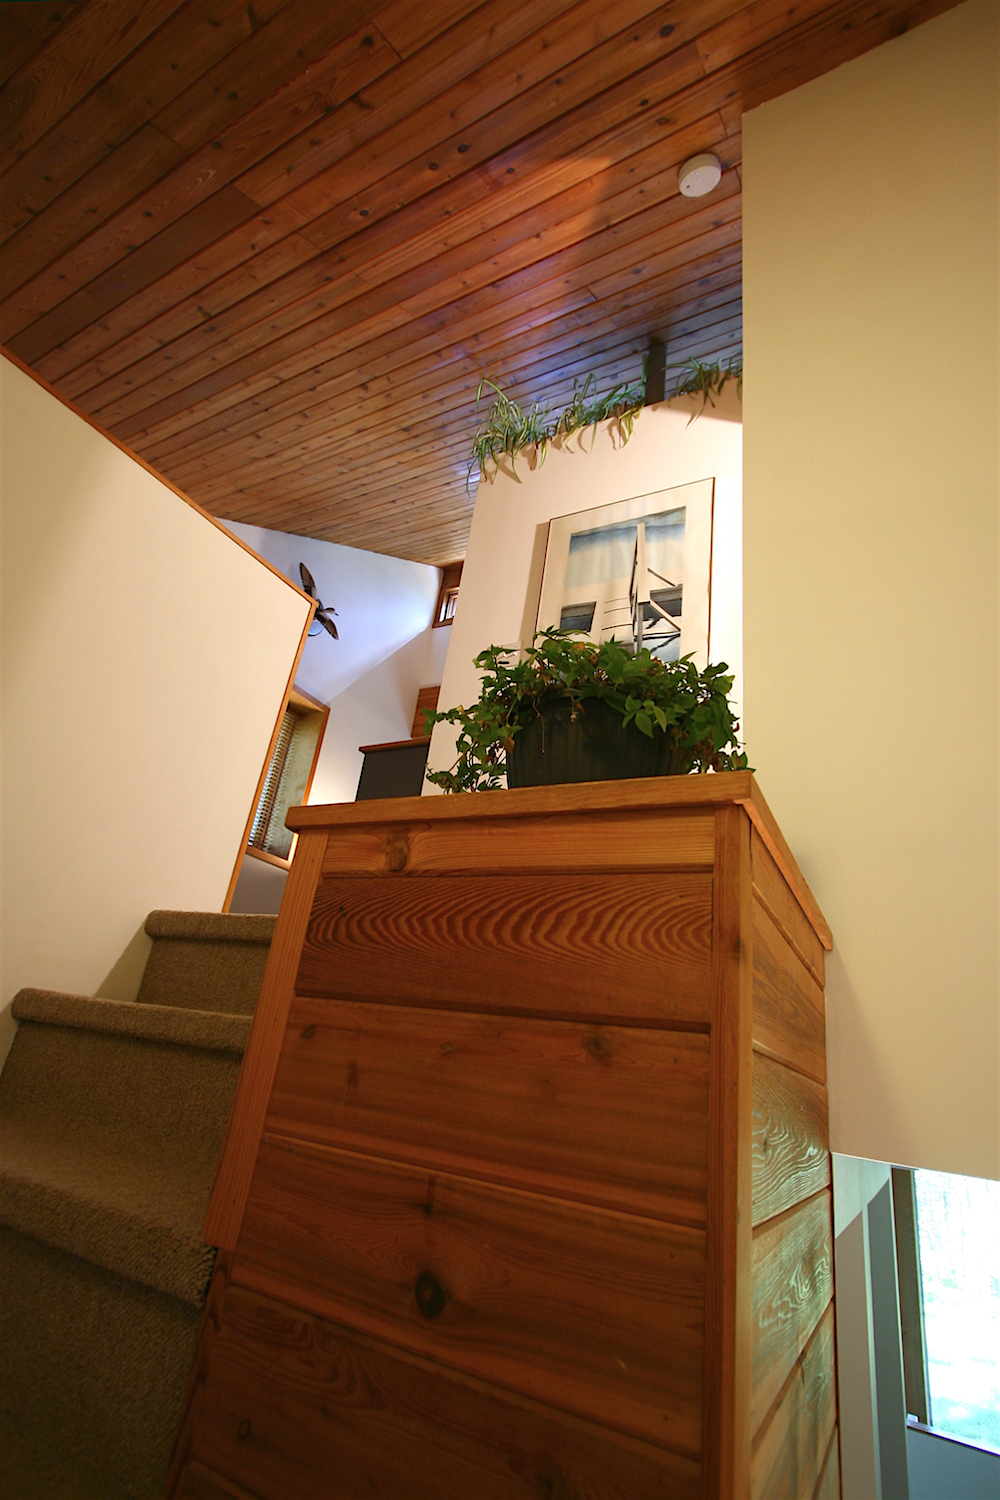 The semi-circular staircase from the living area to the upper level...